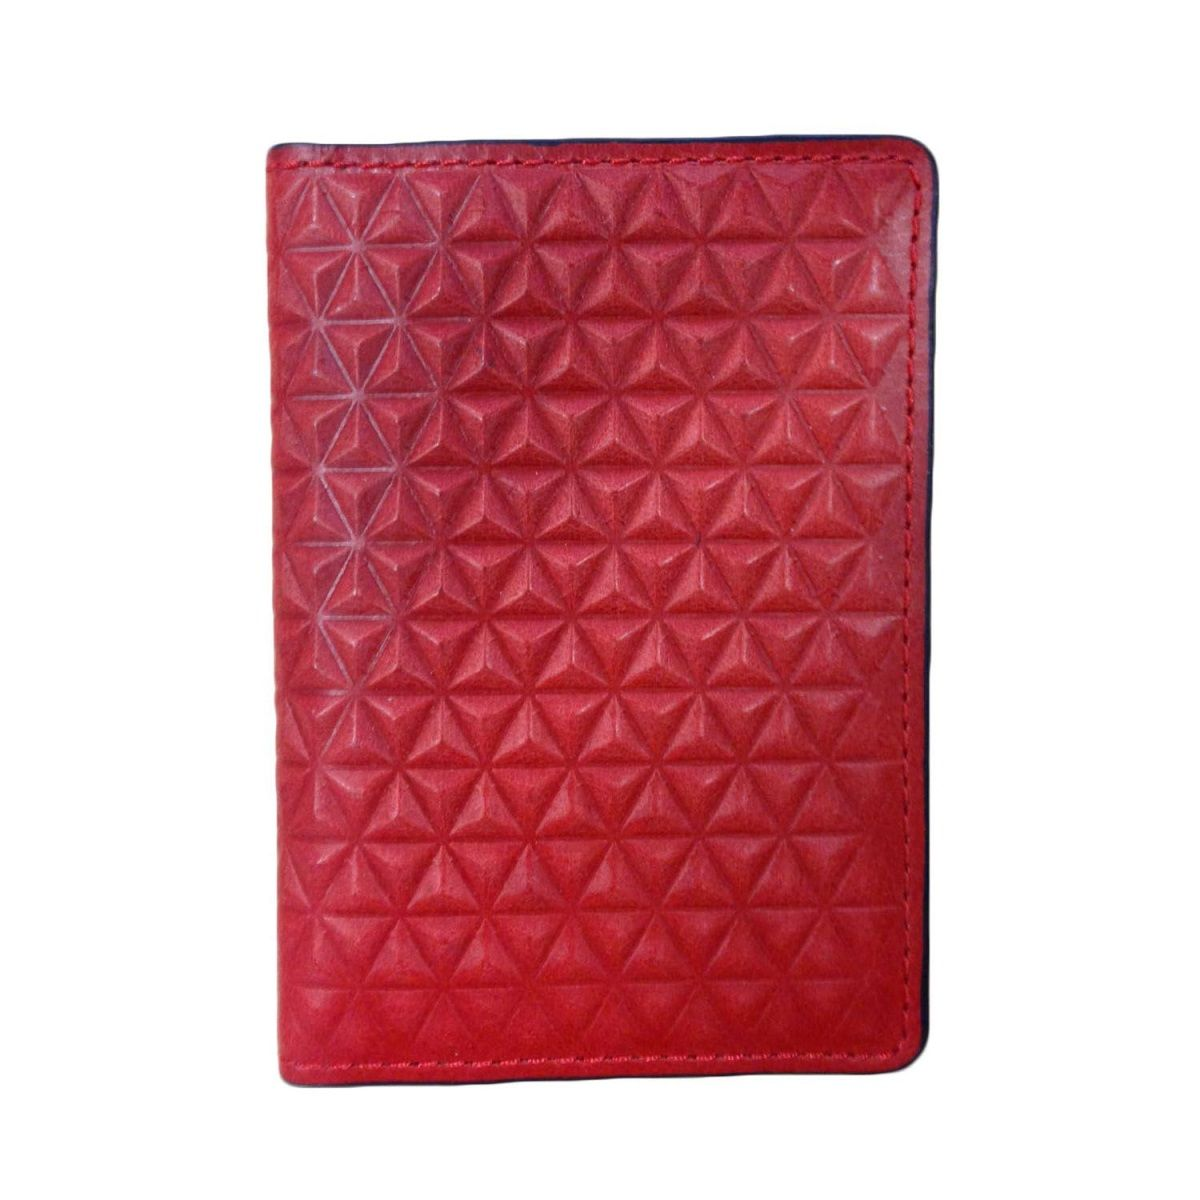 J.FOLD Tetra Folding Card Carrier - Red